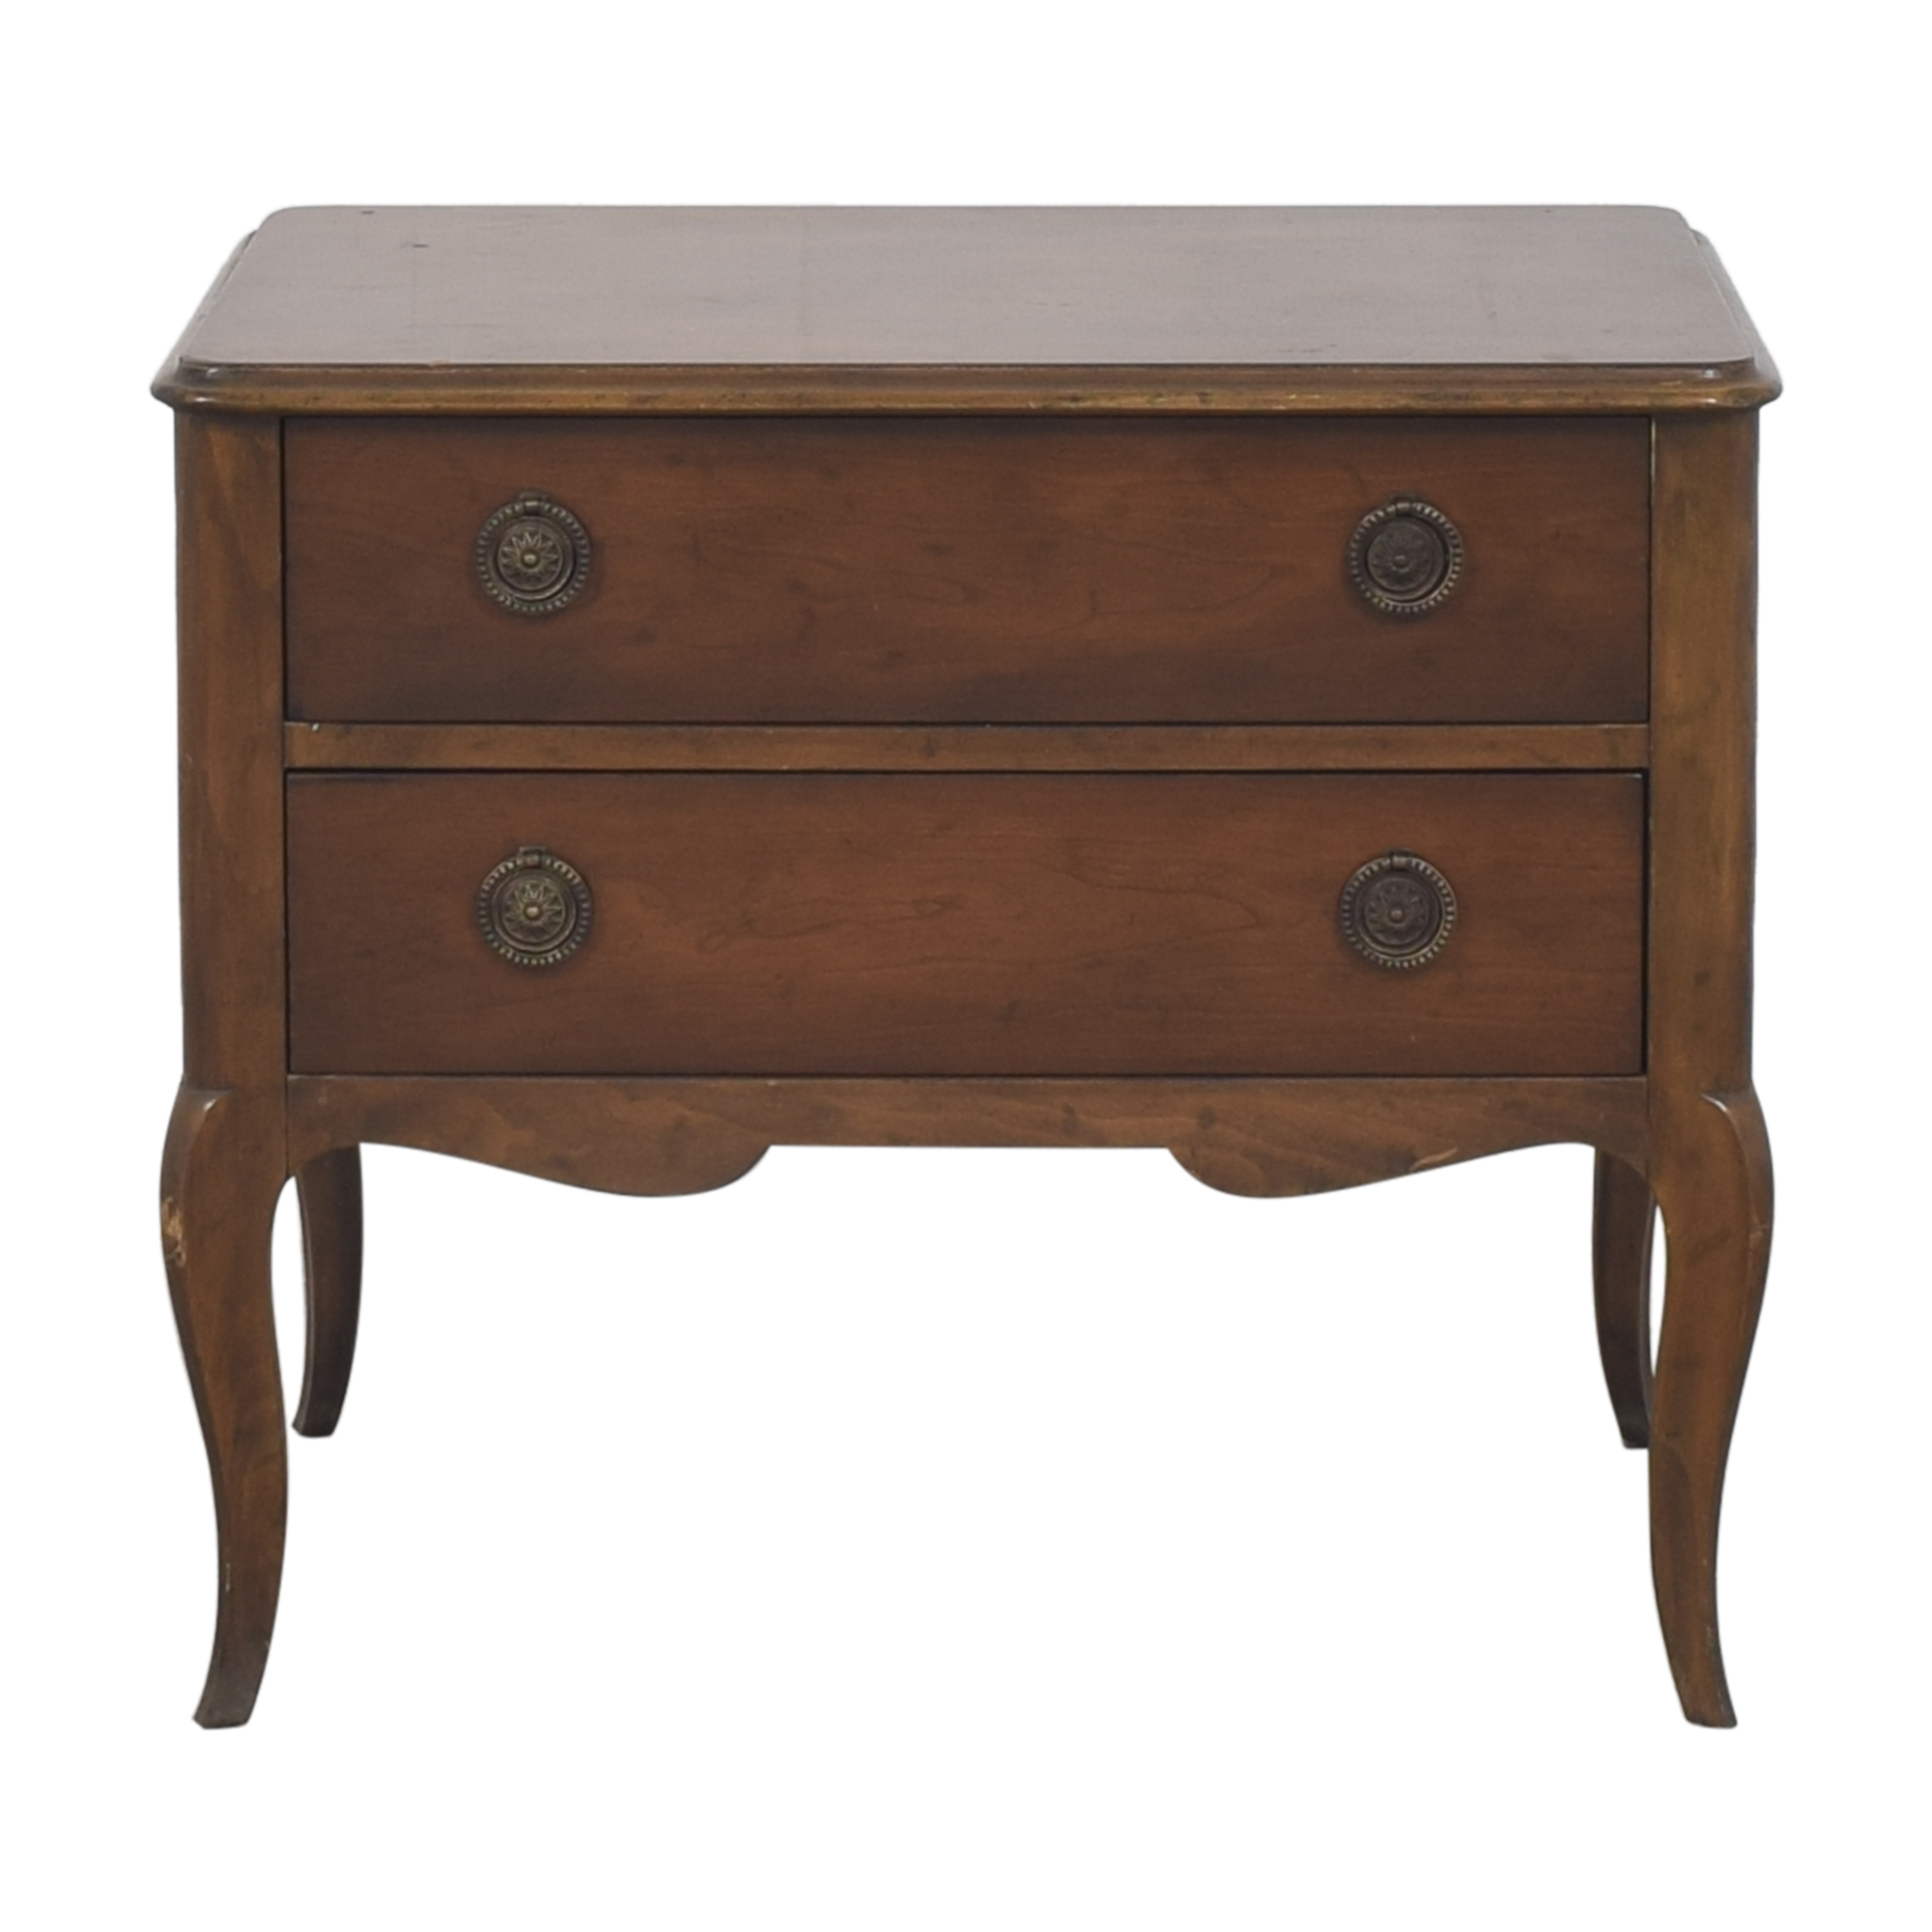 Baker Furniture Baker Furniture Two Drawer Nightstand brown